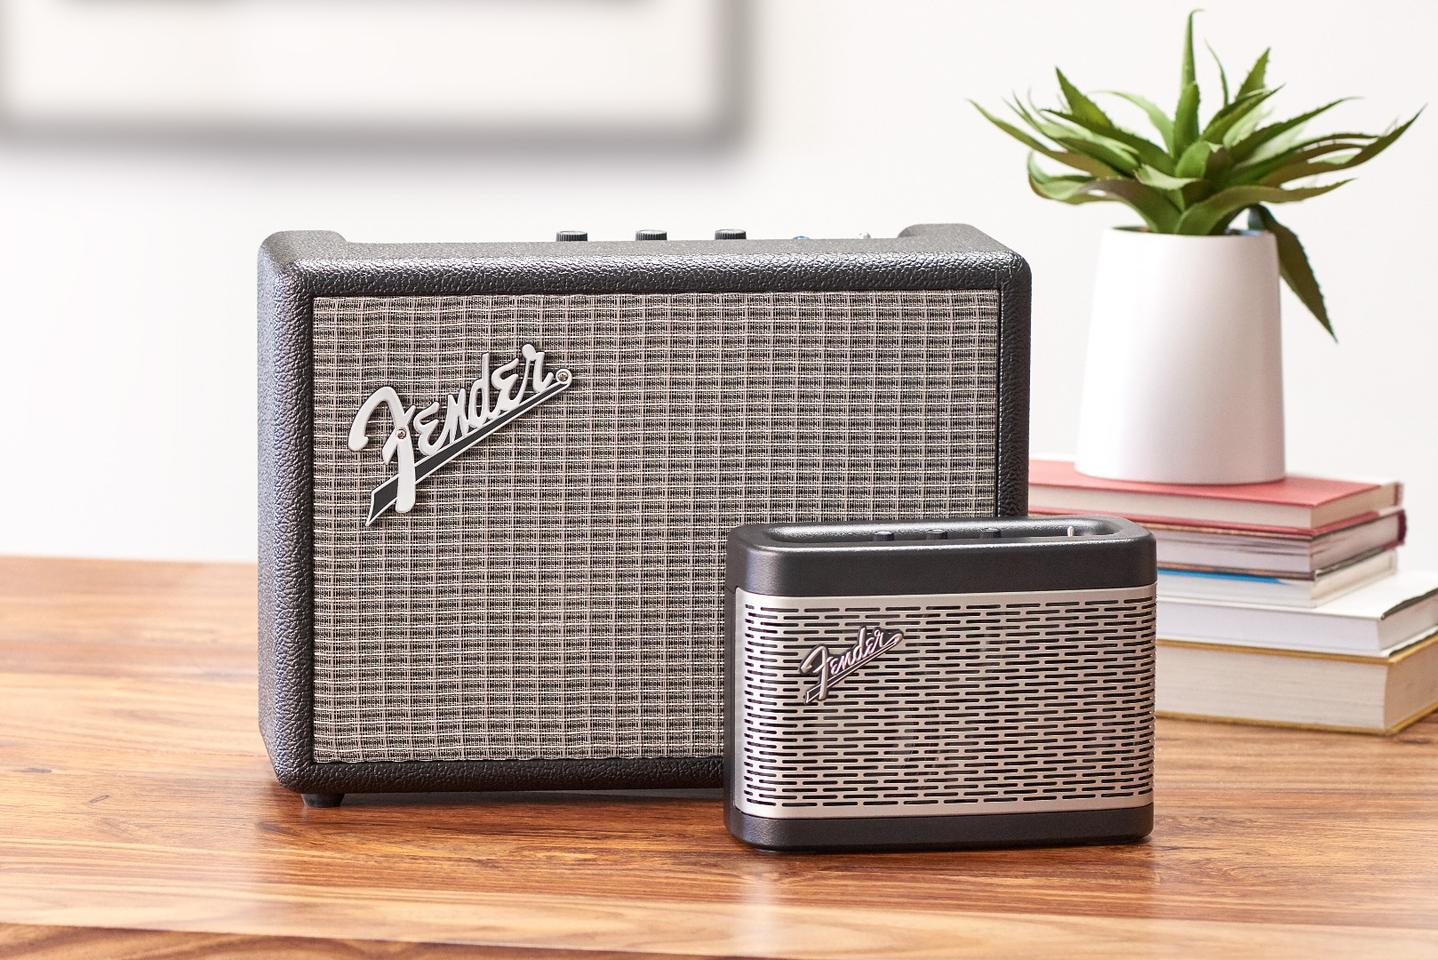 Fender's debut bluetooth speakers, the Newport and the larger Monterey